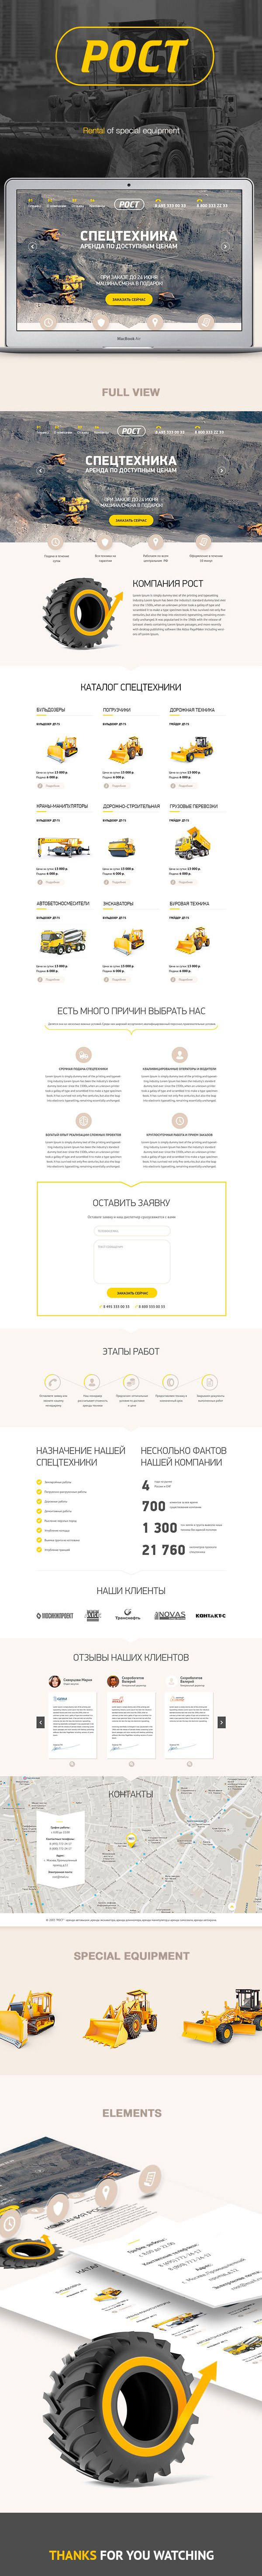 Rental of special equipment on Behance